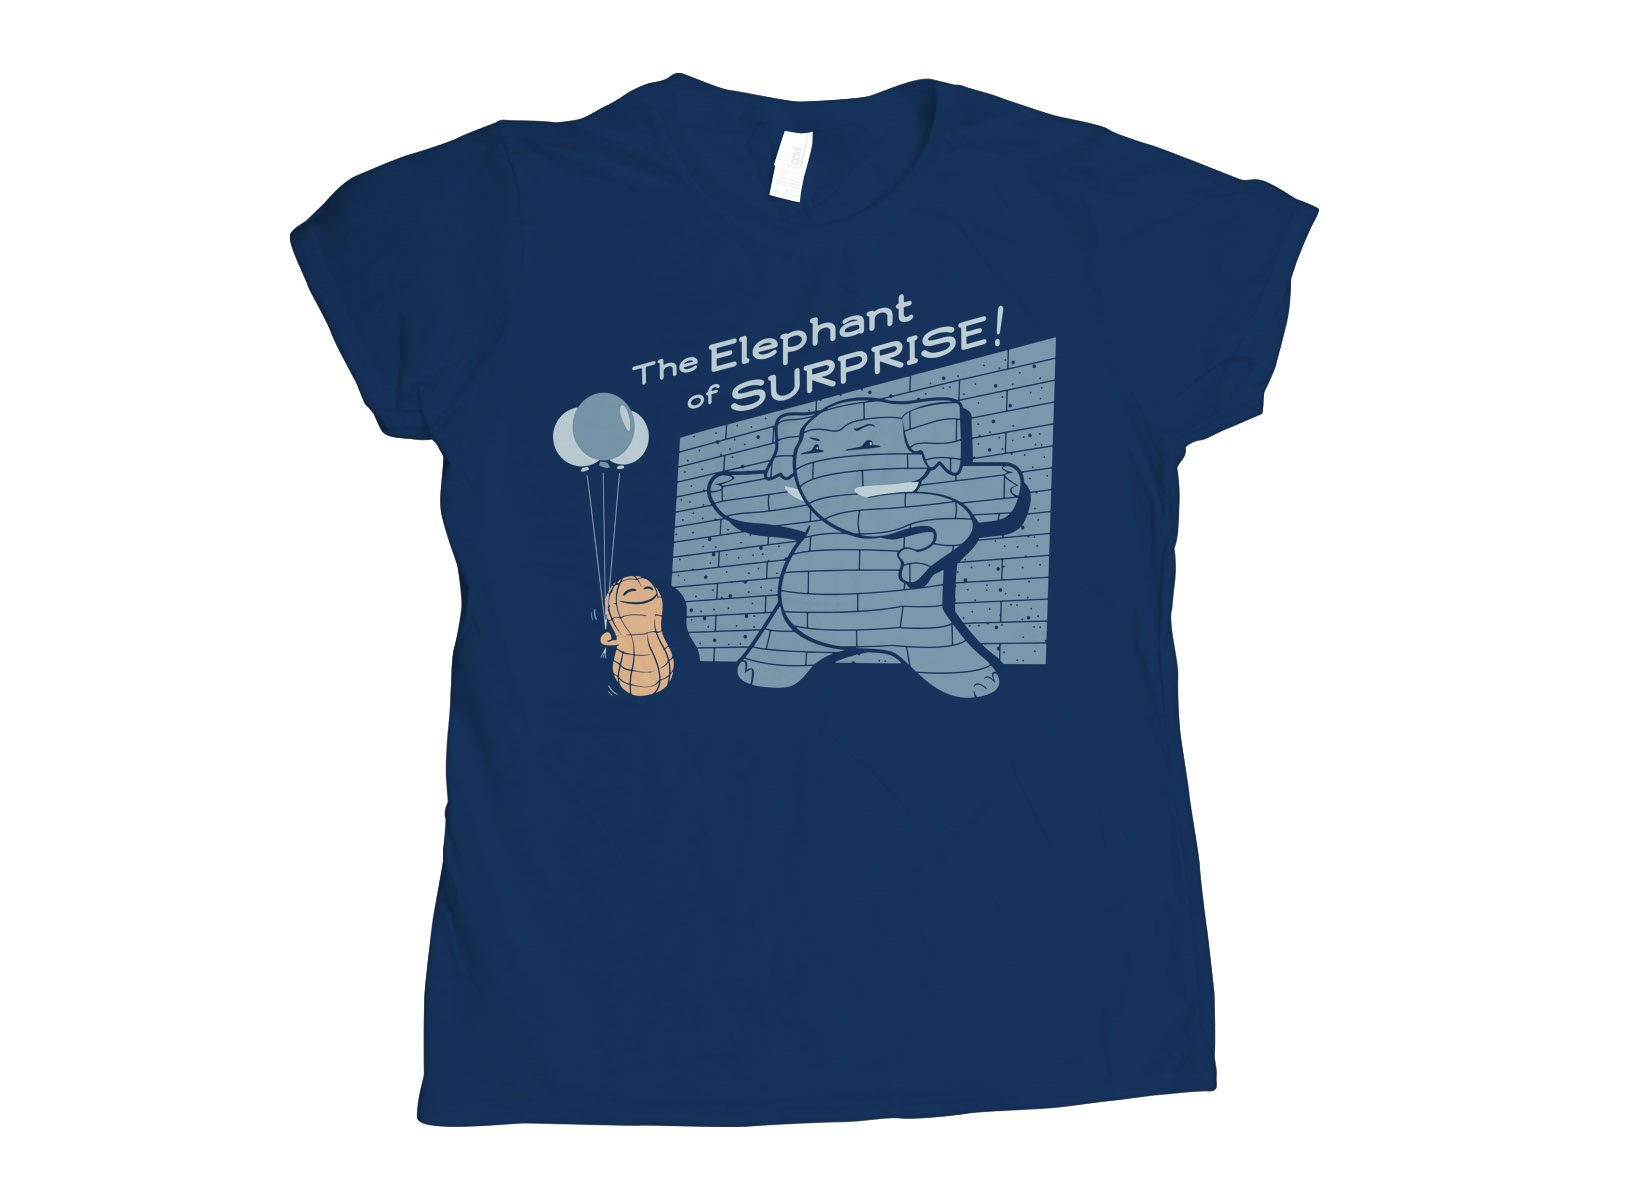 The Elephant of Surprise! on Womens T-Shirt